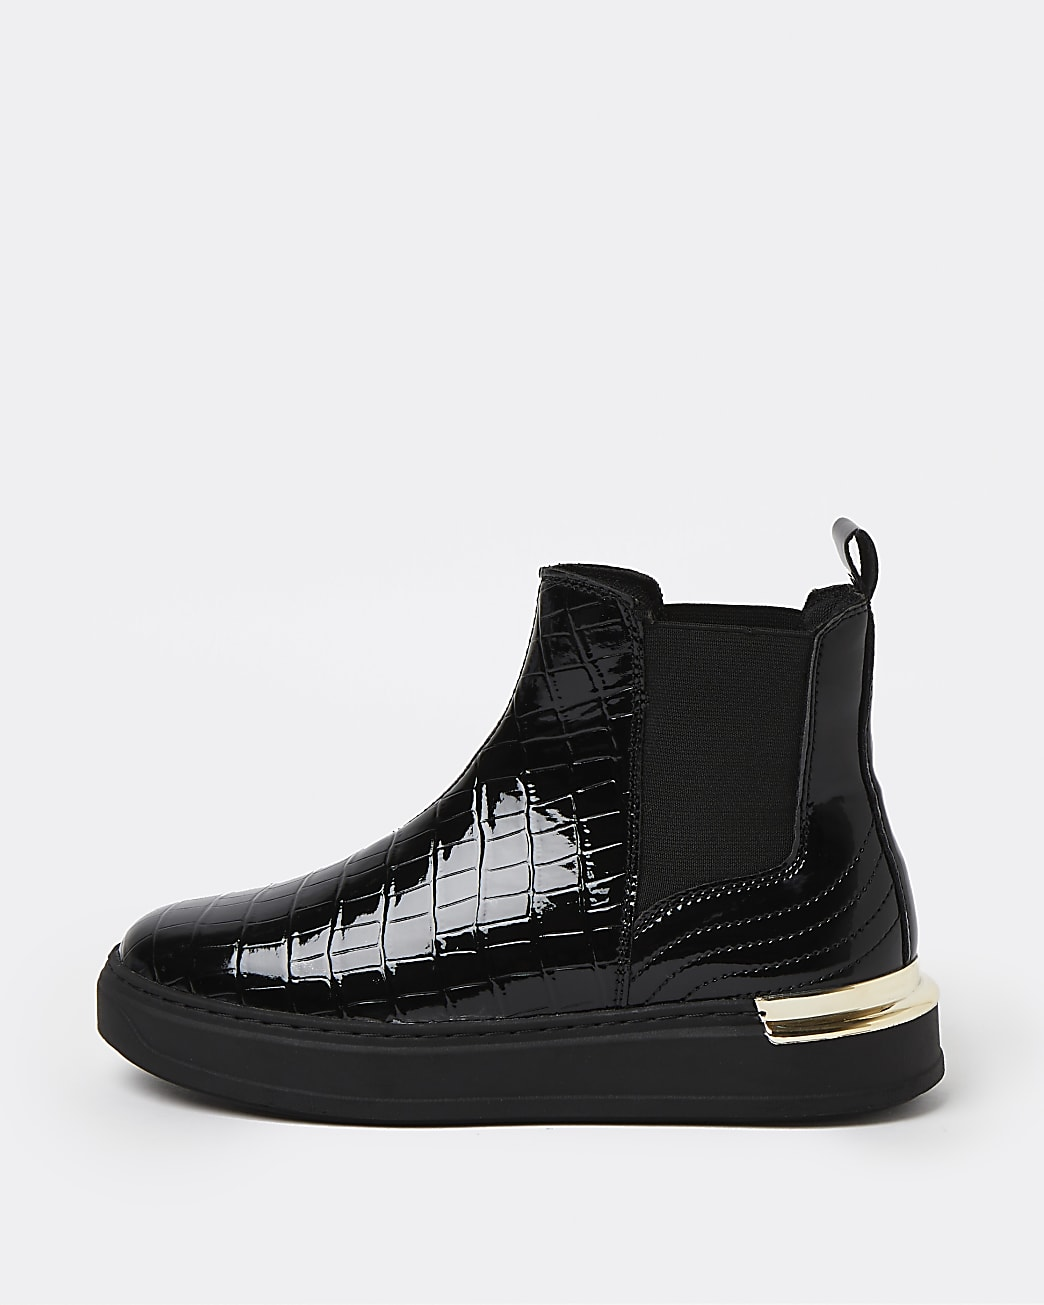 Black patent croc embossed high top trainers